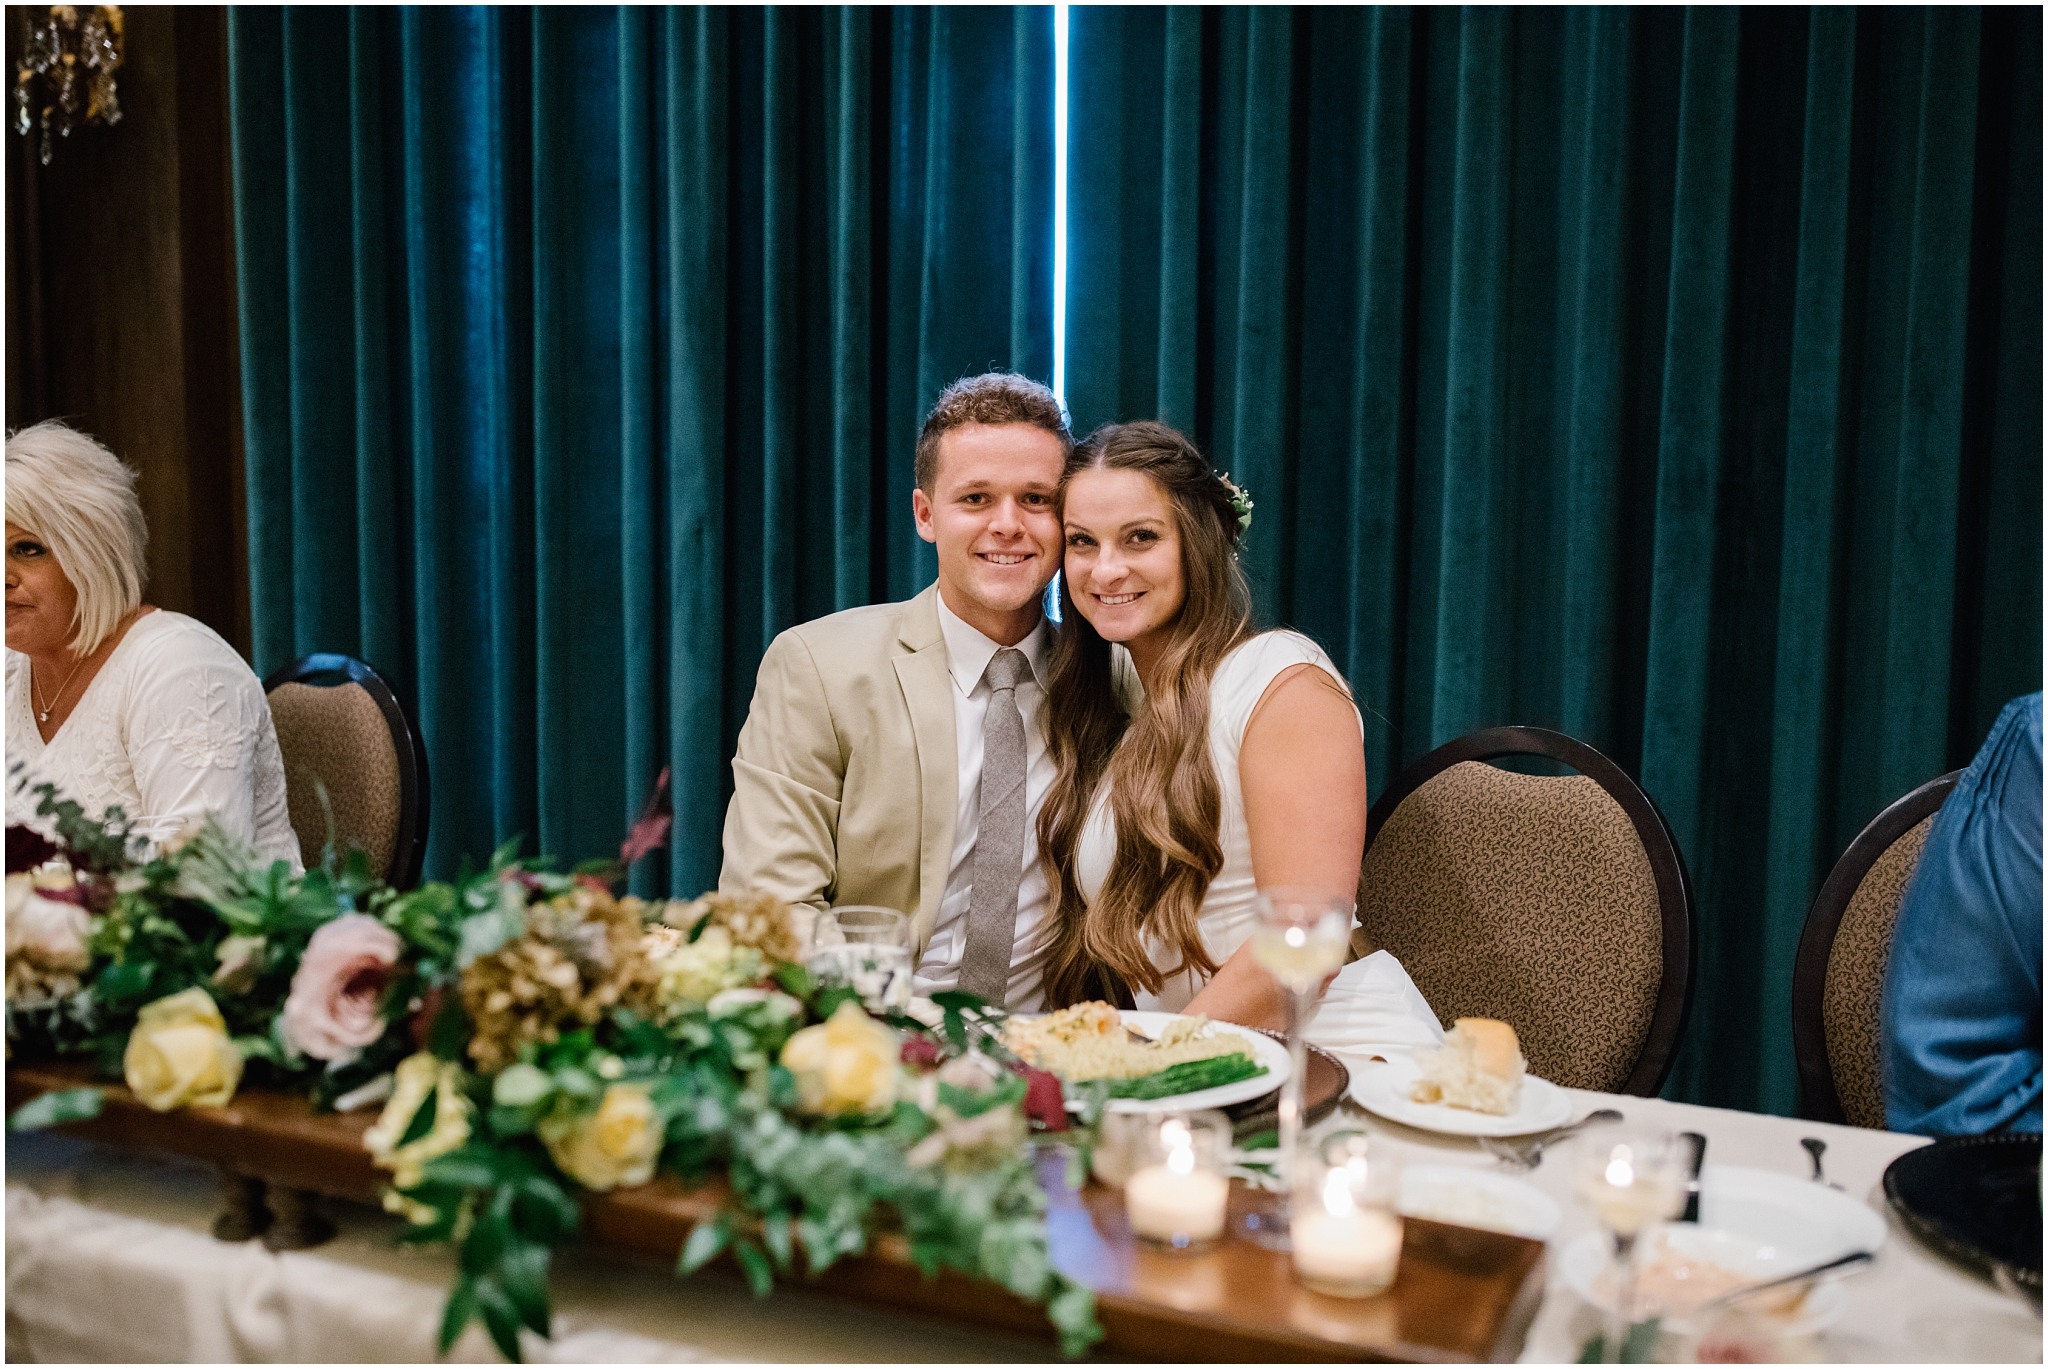 JC-Wedding-273_Lizzie-B-Imagery-Utah-Wedding-Photographer-Salt-Lake-City-Temple-Joseph-Smith-Memorial-Building-Reception.jpg